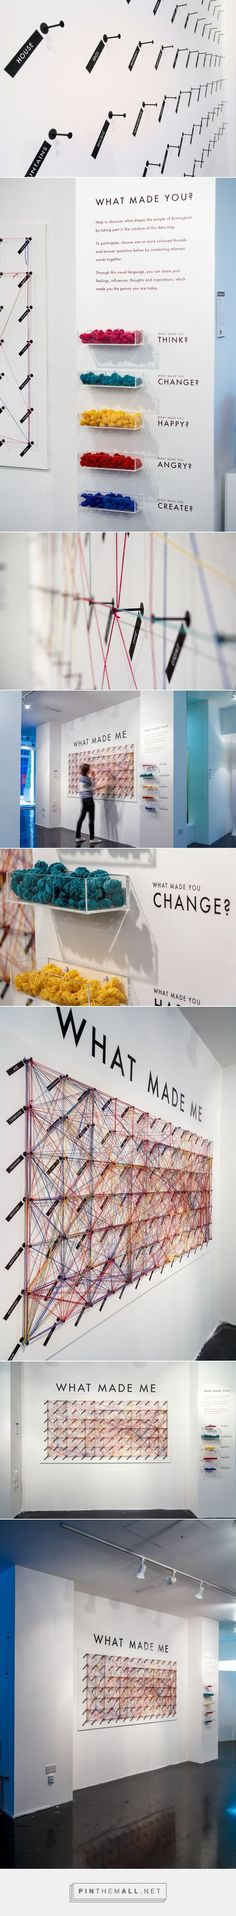 WHAT MADE ME Interactive Public Installation on Behance... - a grouped images picture - Pin Them All: